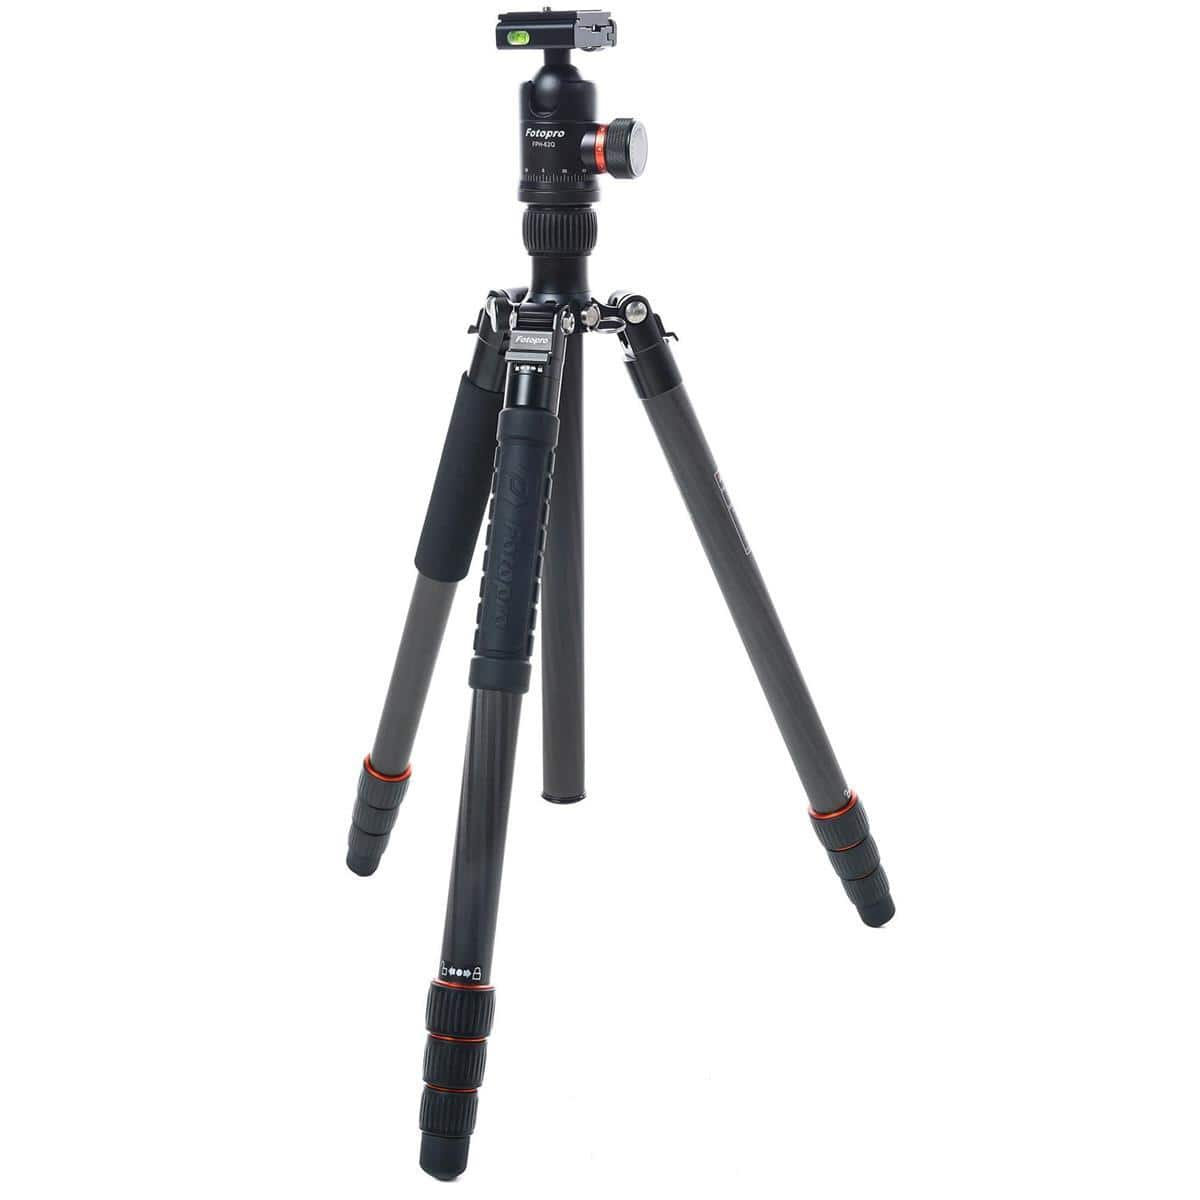 FotoPro X-Go Max 4-Section Carbon Fiber Tripod with Built-In Monopod $140 + free s/h at Adorama